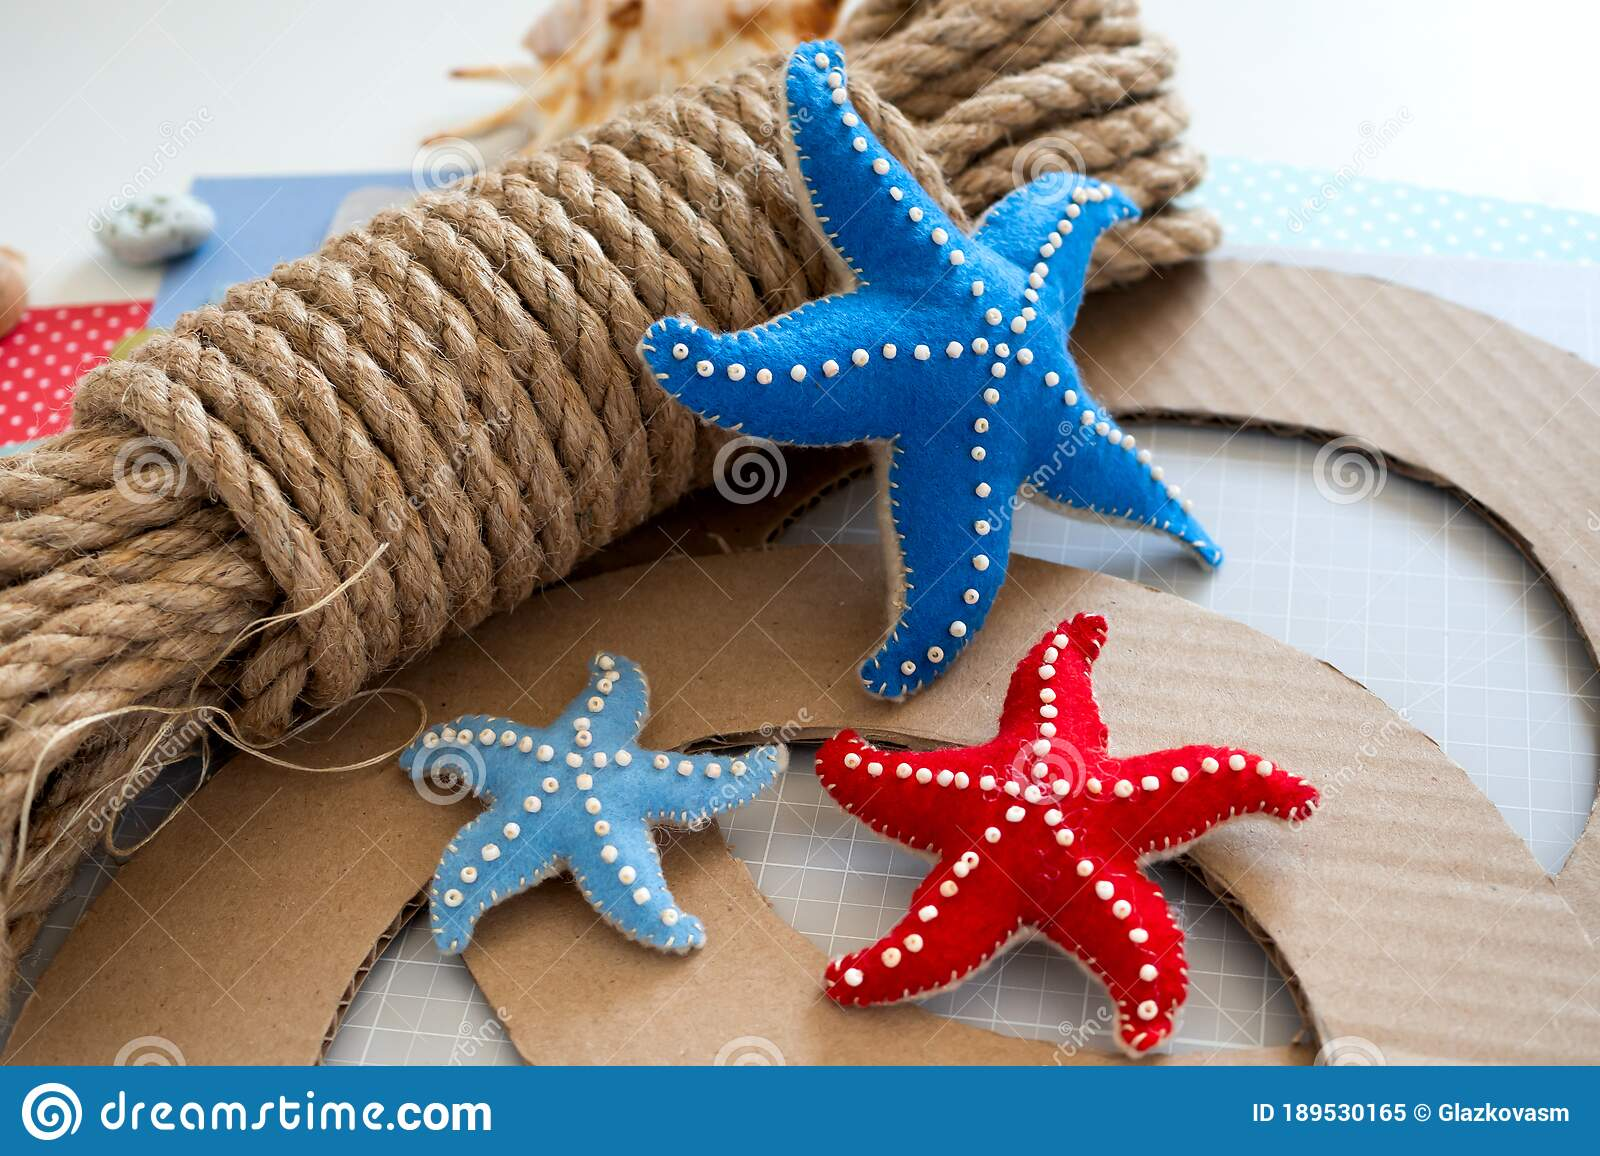 Diy Instruction Step By Step Tutorial Making Summer Decor Wreath Of Rope With Sea Stars Made Of Felt Craft Tools Stock Image Image Of Handmade Craft 189530165